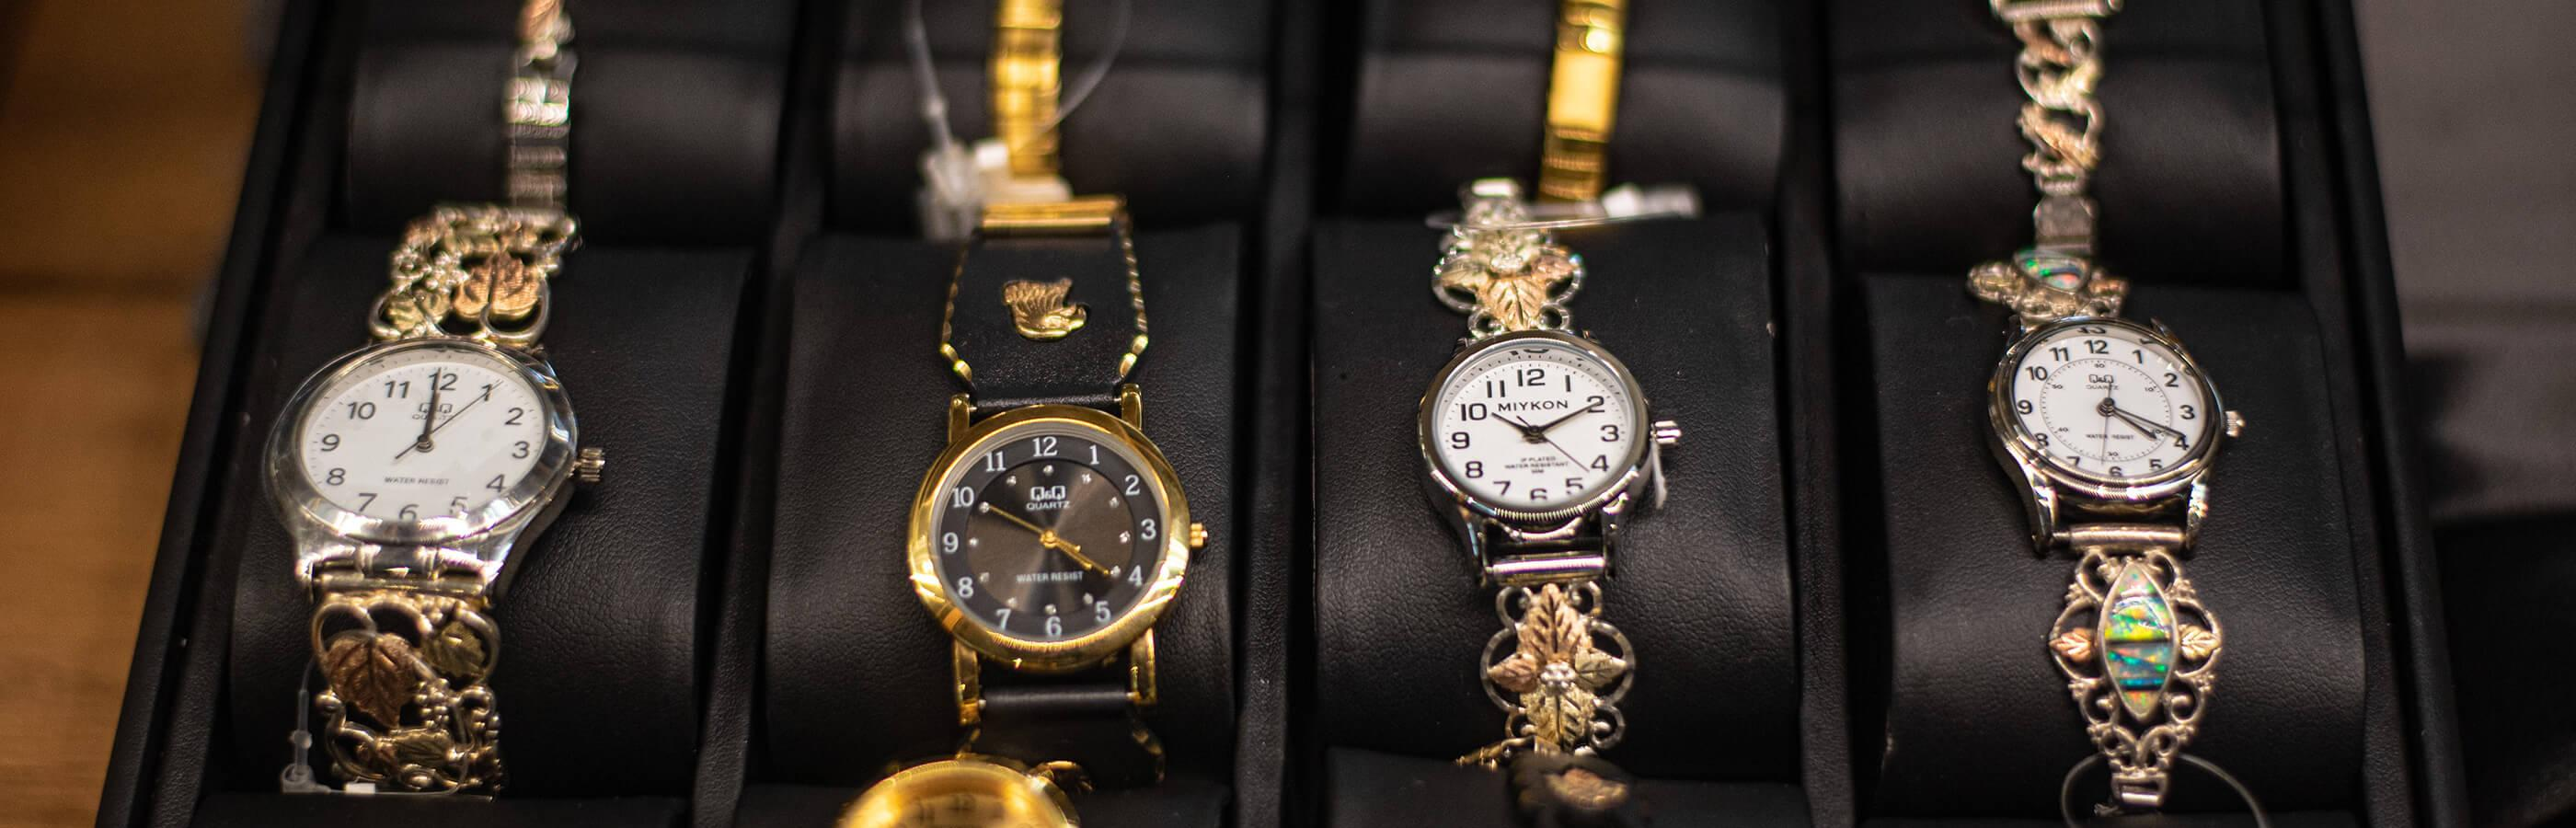 Black Hills Gold Watch Display At Gold Diggers